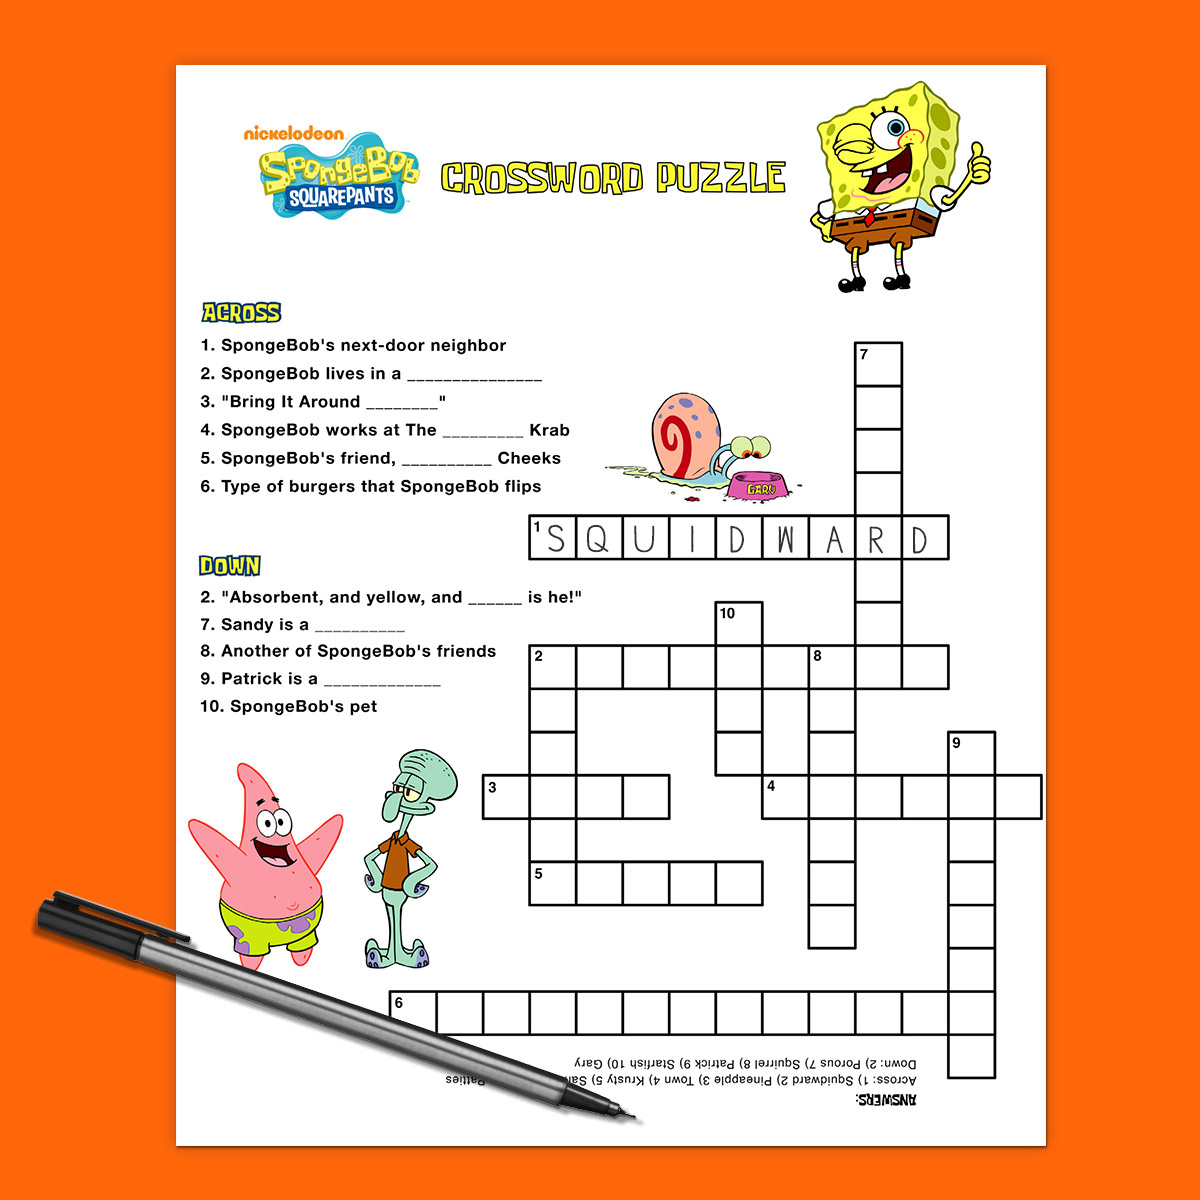 Spongebob Crossword Puzzle | Nickelodeon Parents - Printable Cartoon Crossword Puzzles